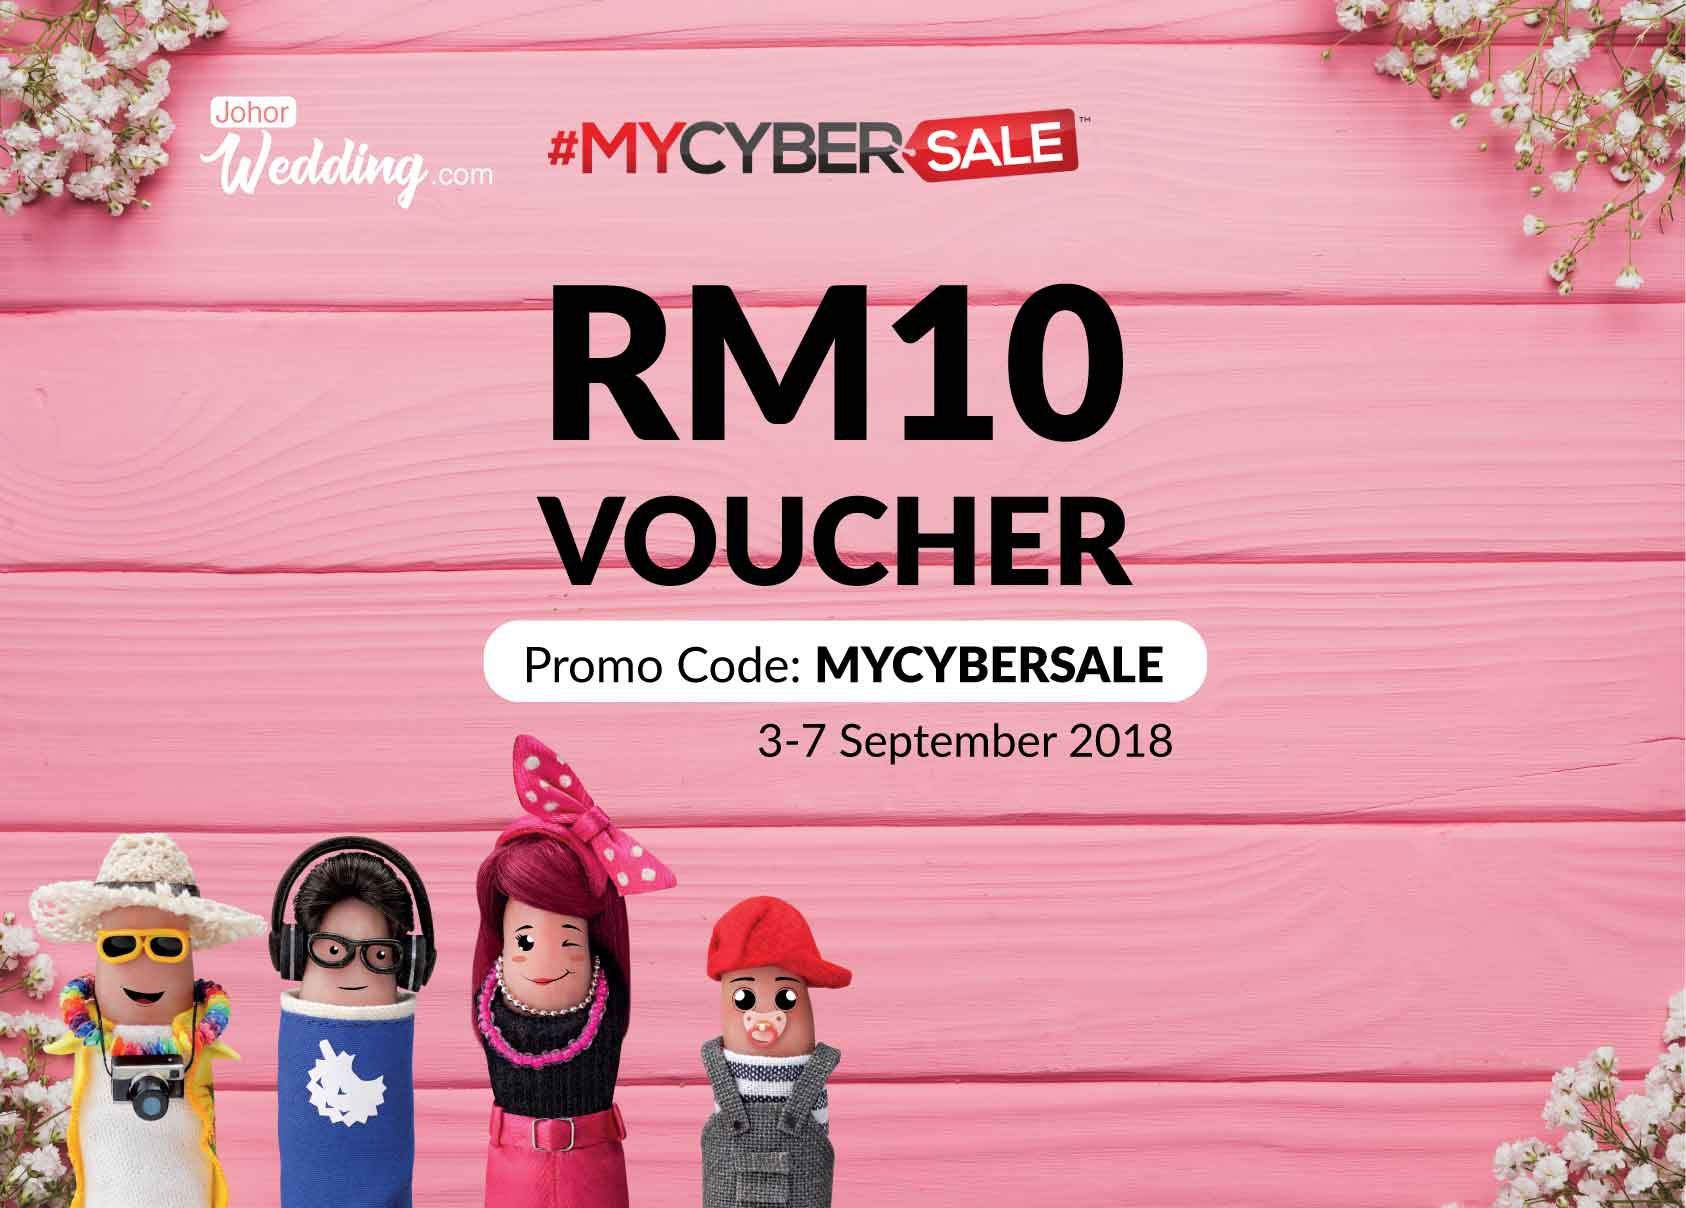 #MYCYBERSALE 2018 - Buy Your Wedding Accessories Now!